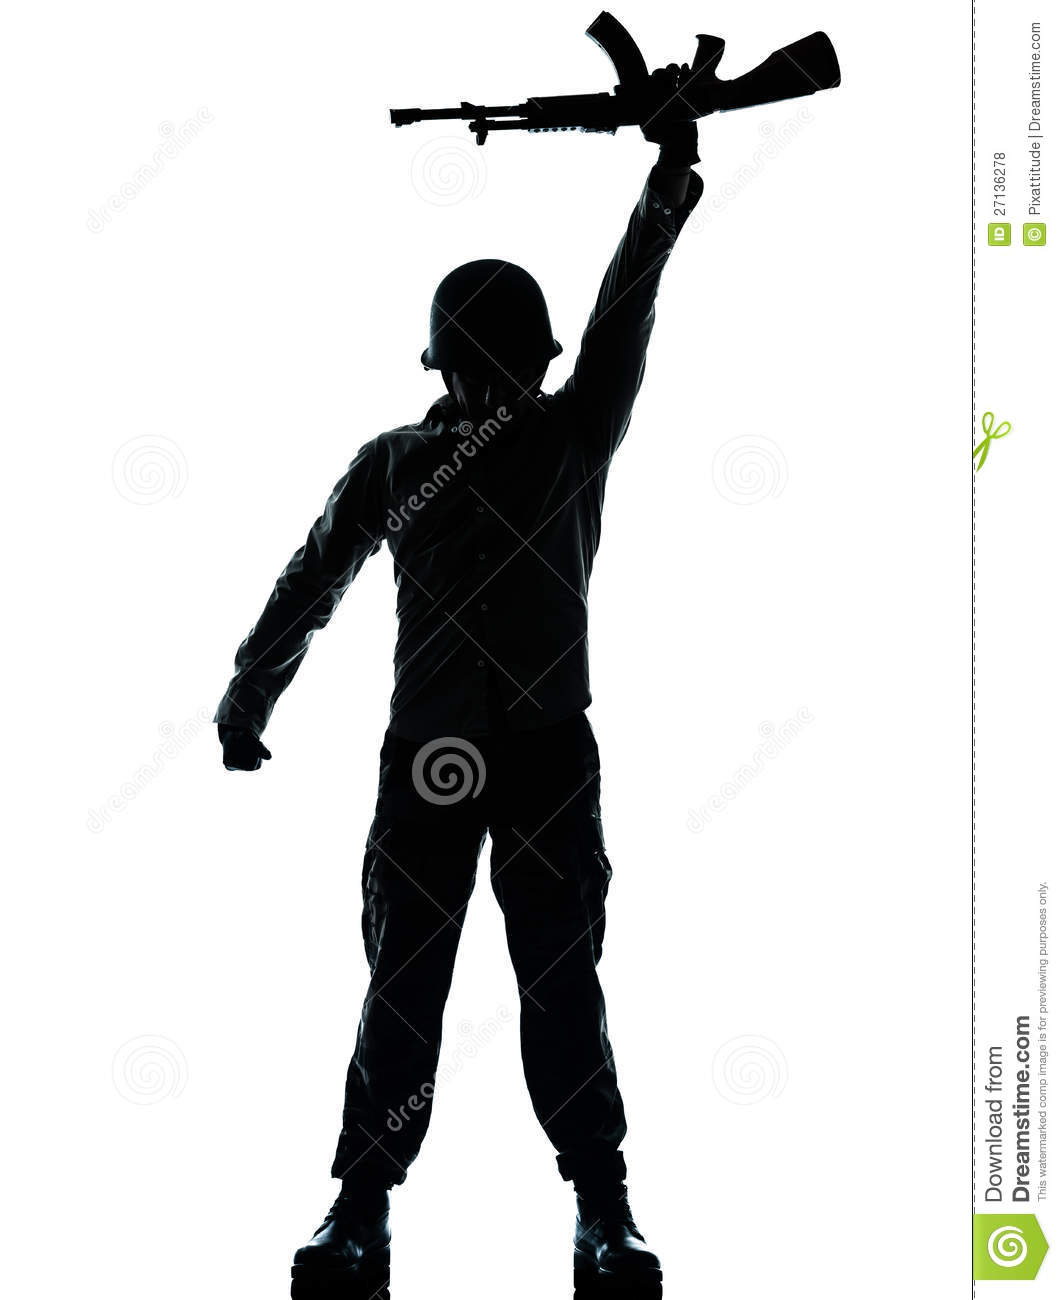 Revolutionary Army Soldier Man Royalty Free Stock Photos.